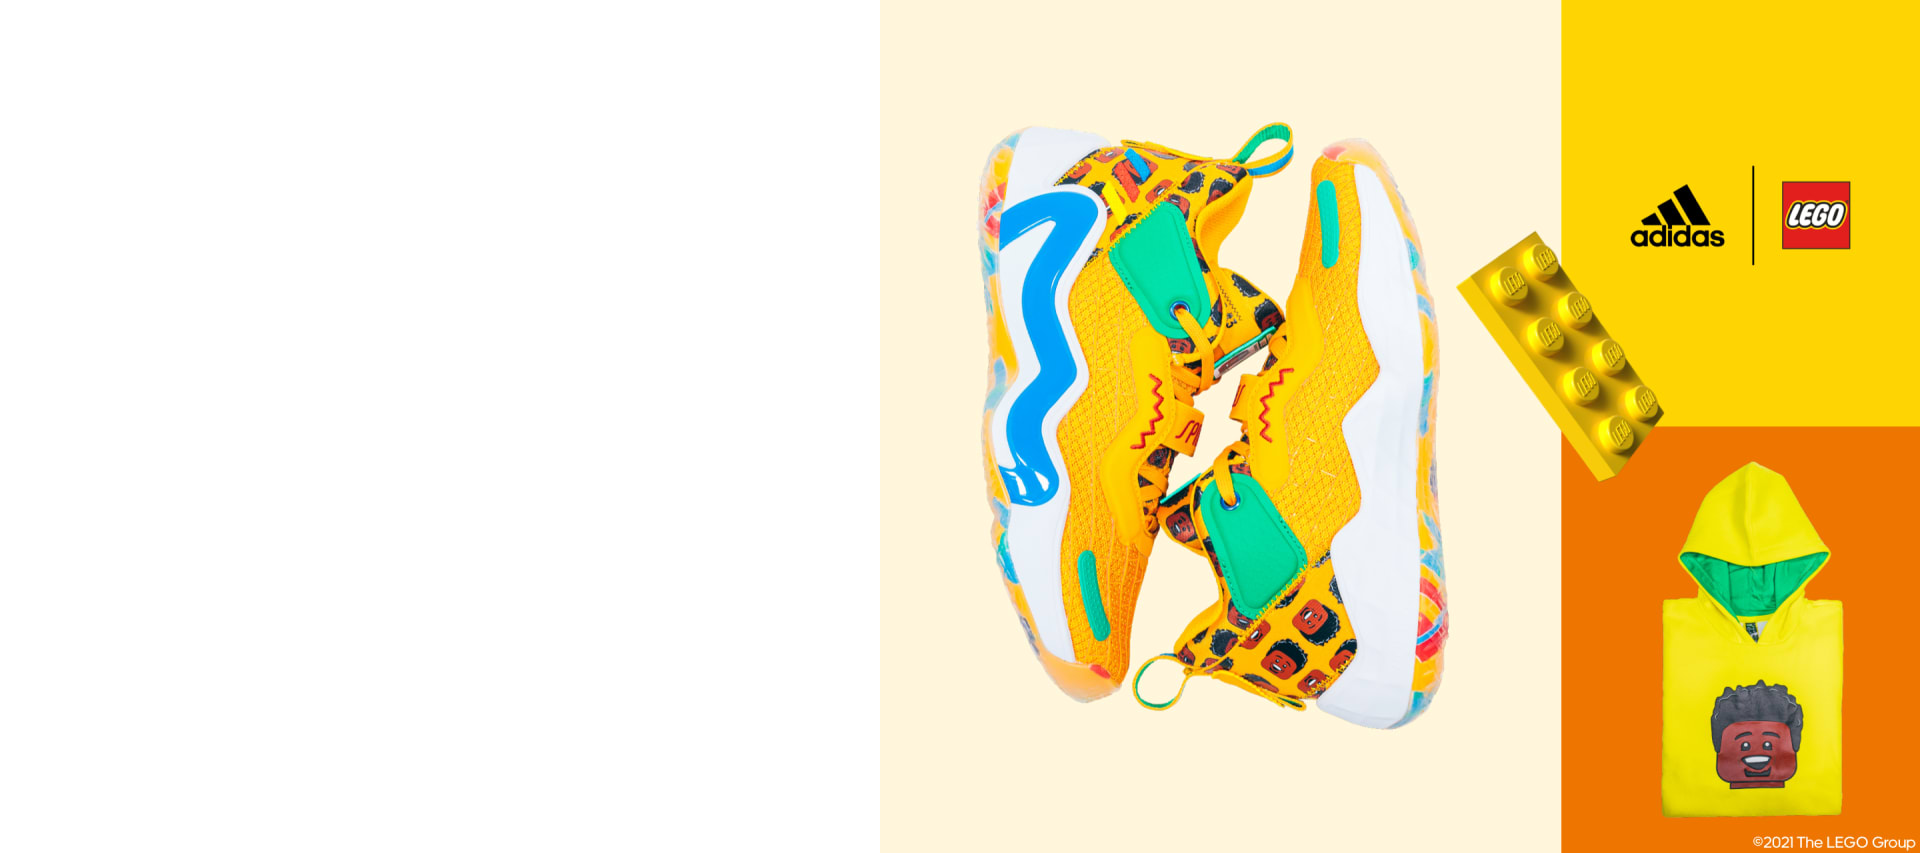 A three-quadrant grid image featuring a printed hoodie and a sneaker pair from the new adidas x LEGO® week basketball collection.